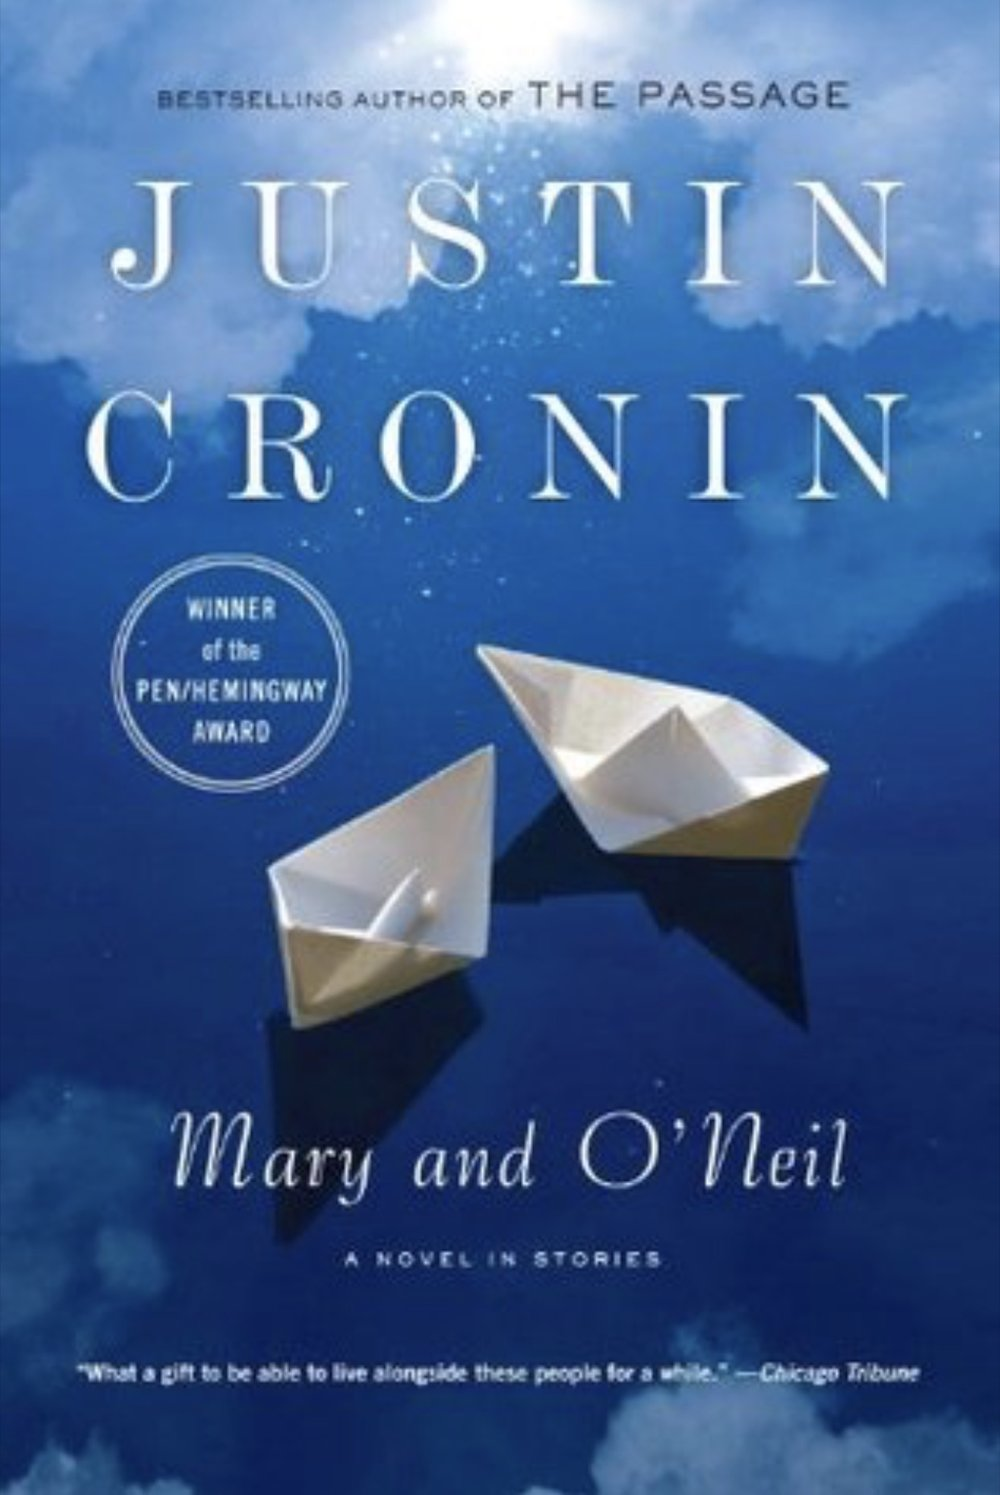 Mary and O'Neil - by Justin Cronin